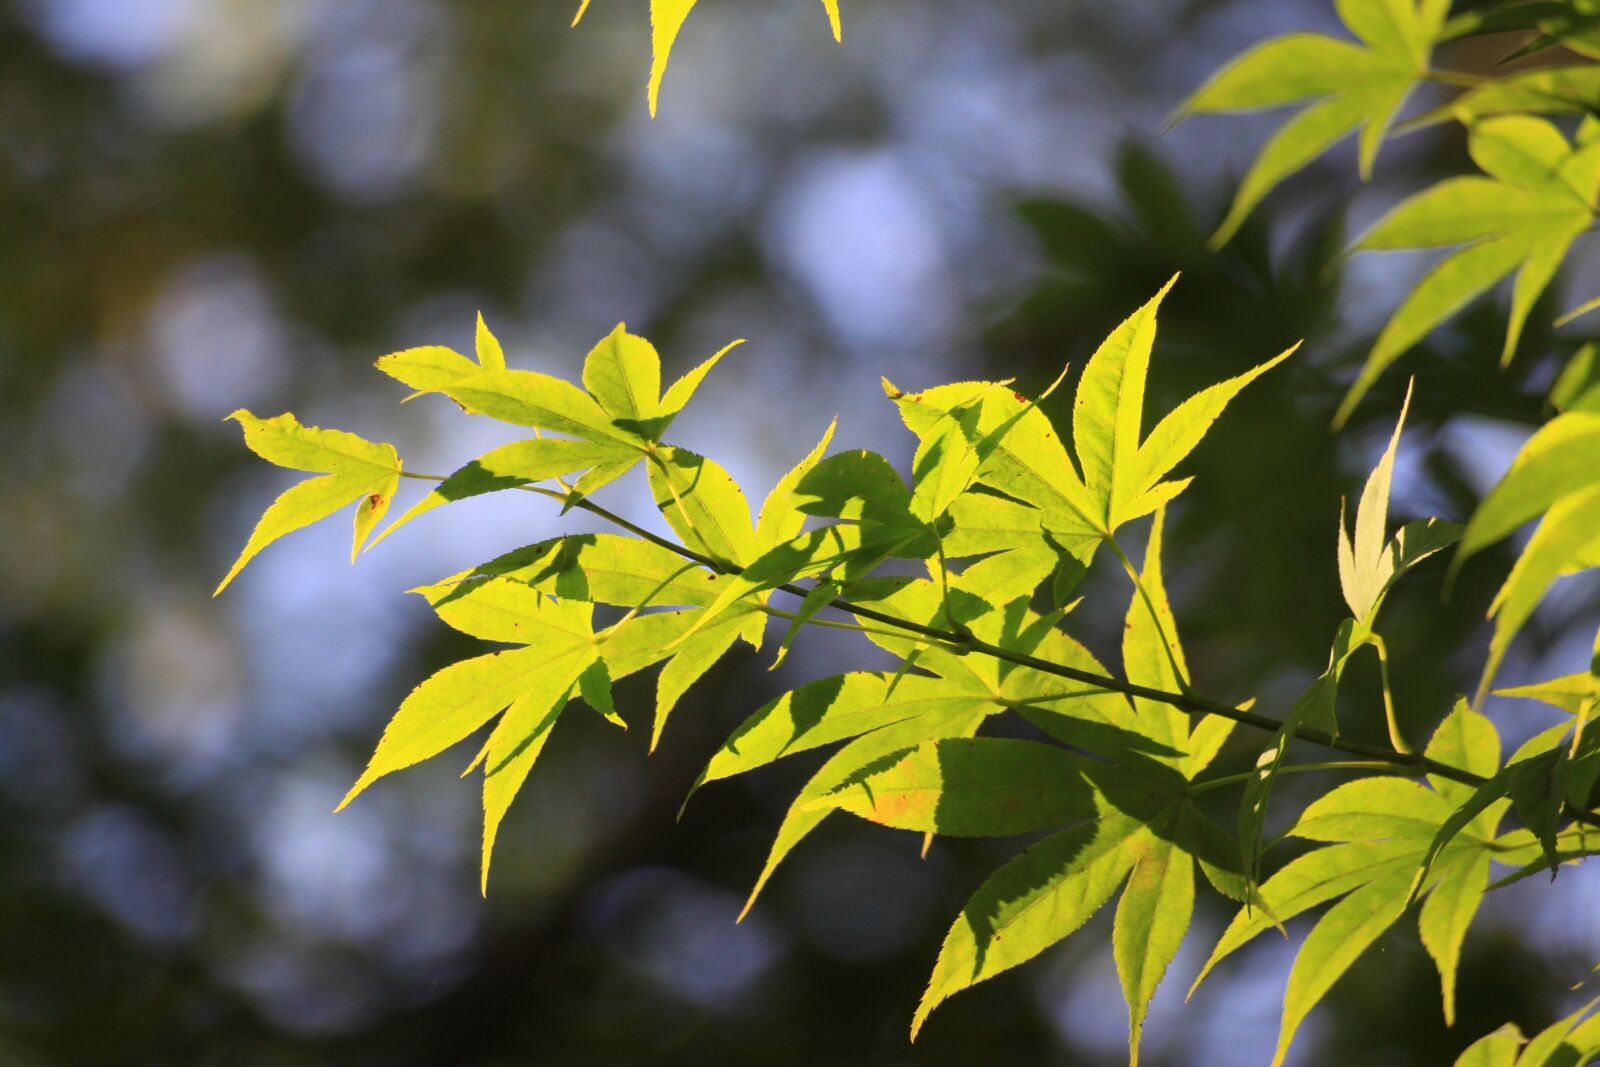 """Canon EOS 50D sample photo. """"Maple leaf, wipes, leaf"""" photography"""